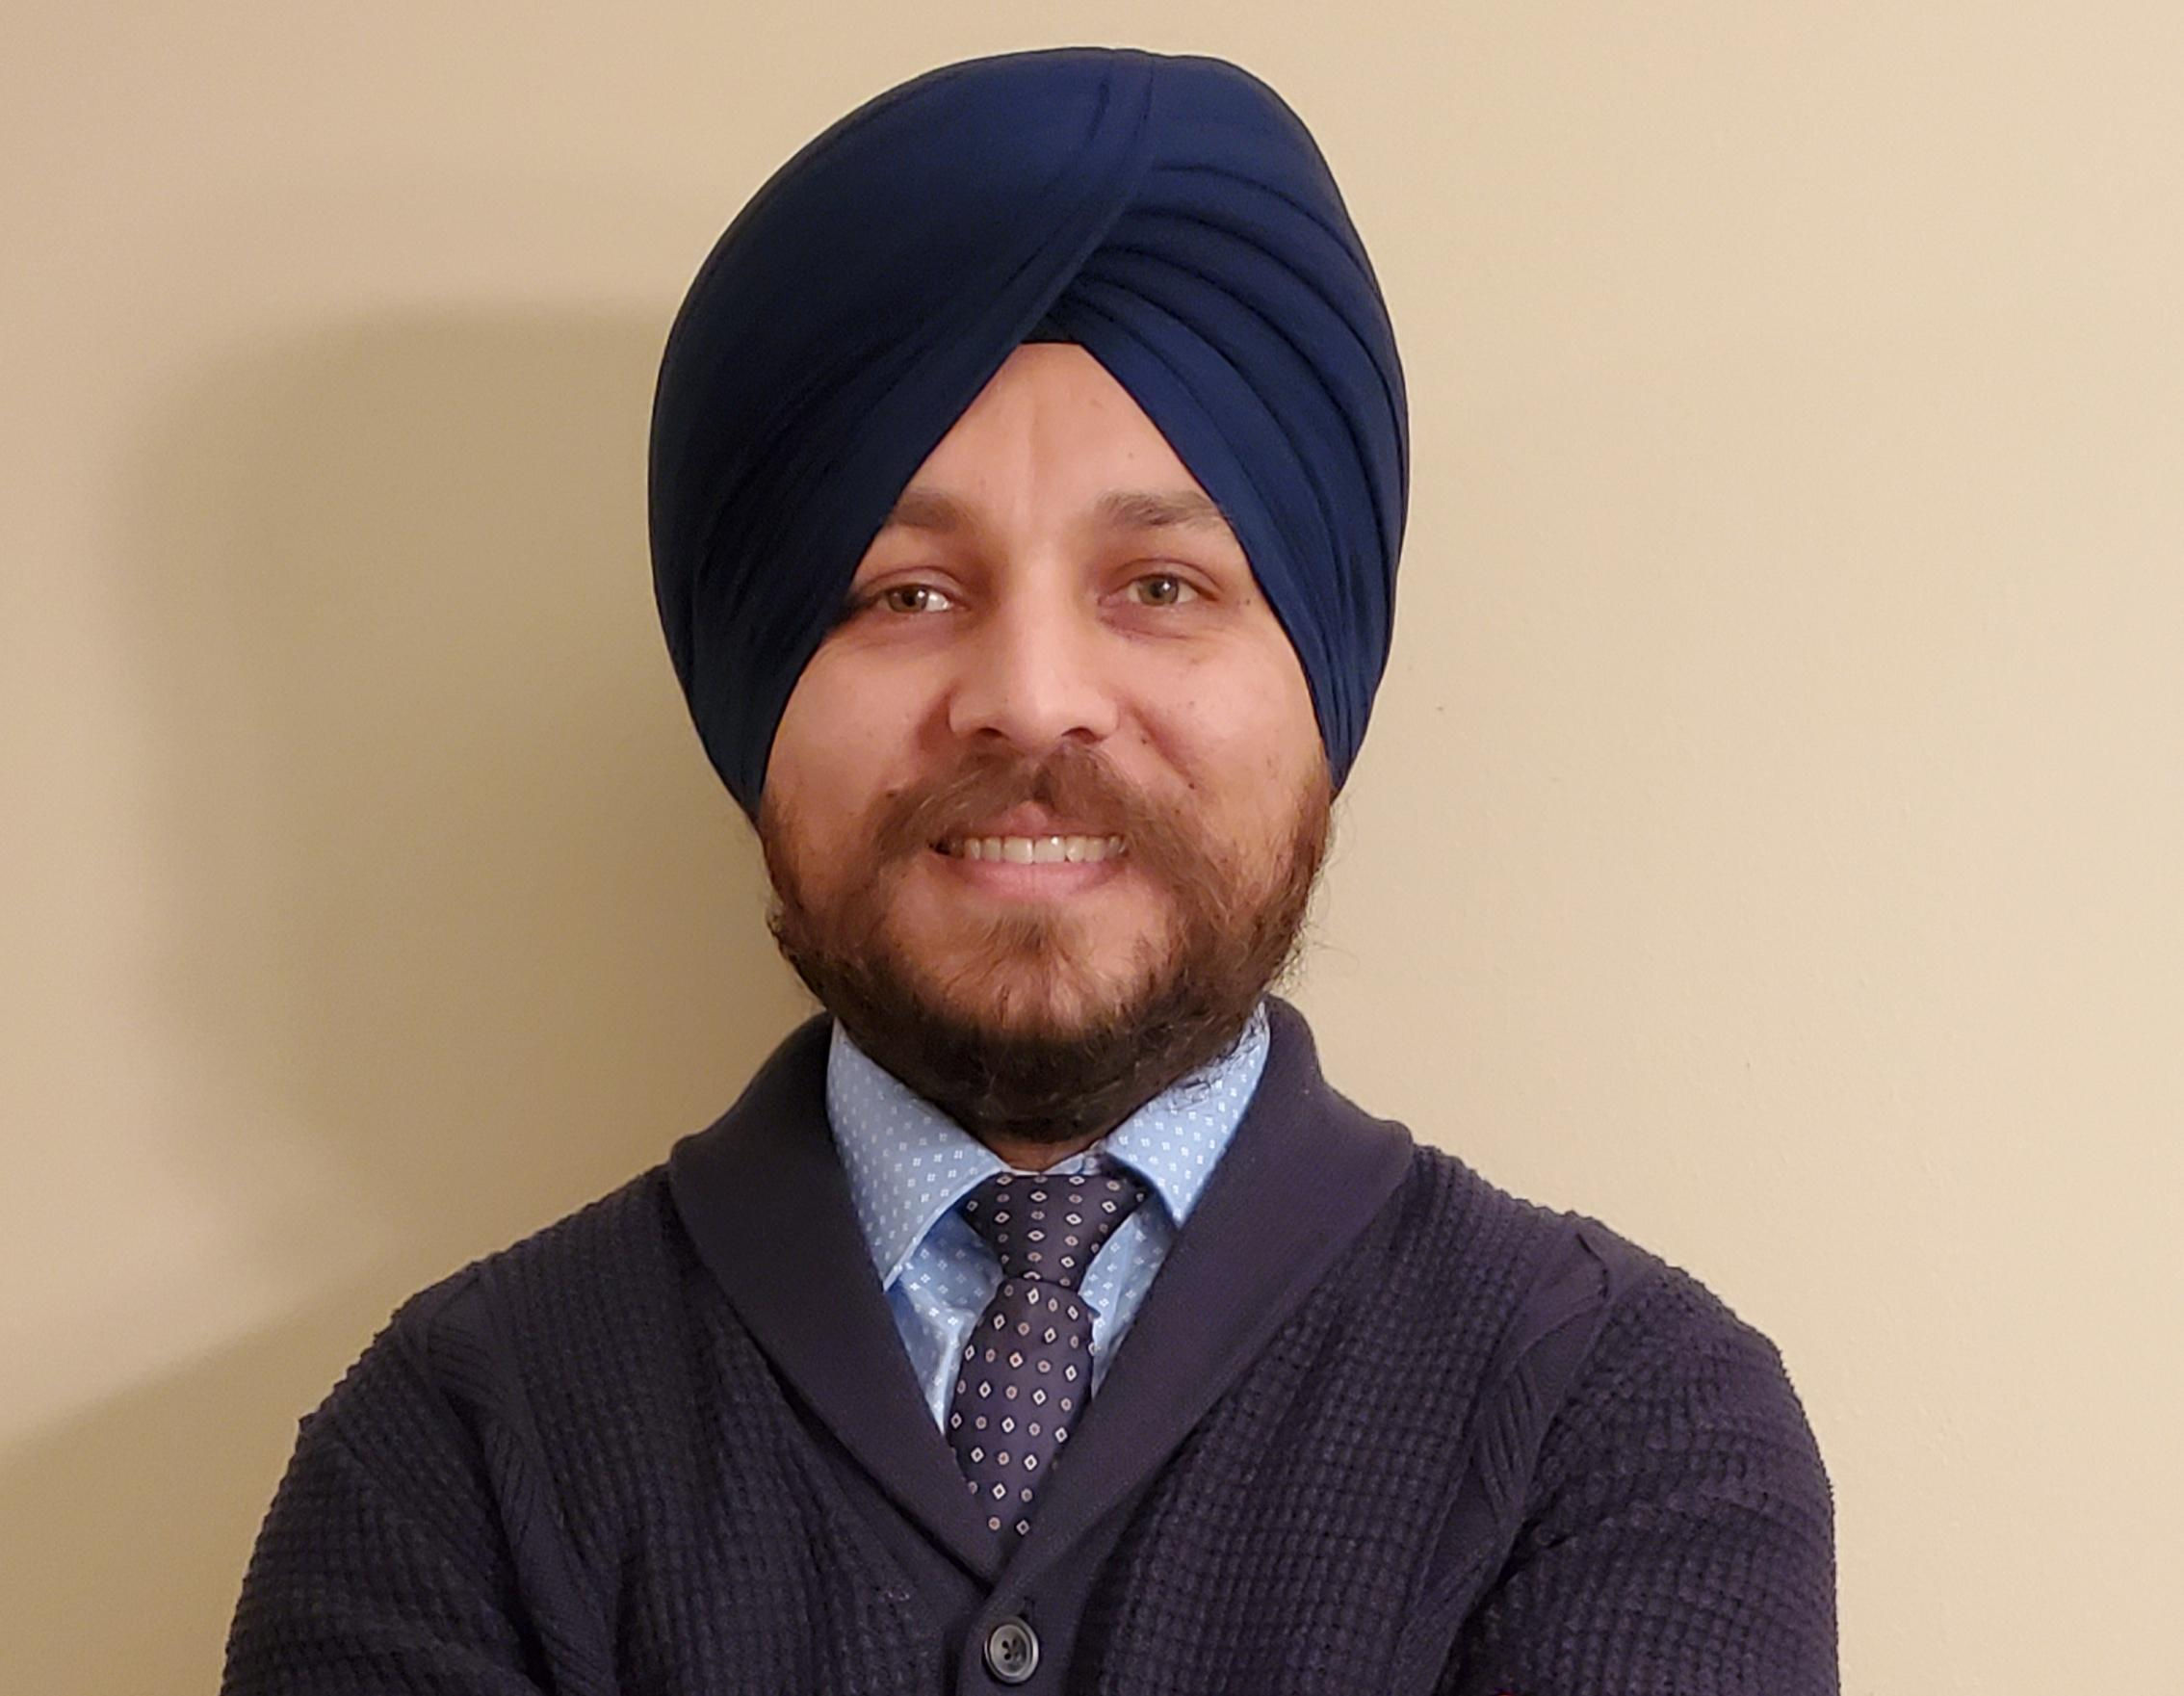 HARPREET SINGH Financial Professional & Insurance Agent